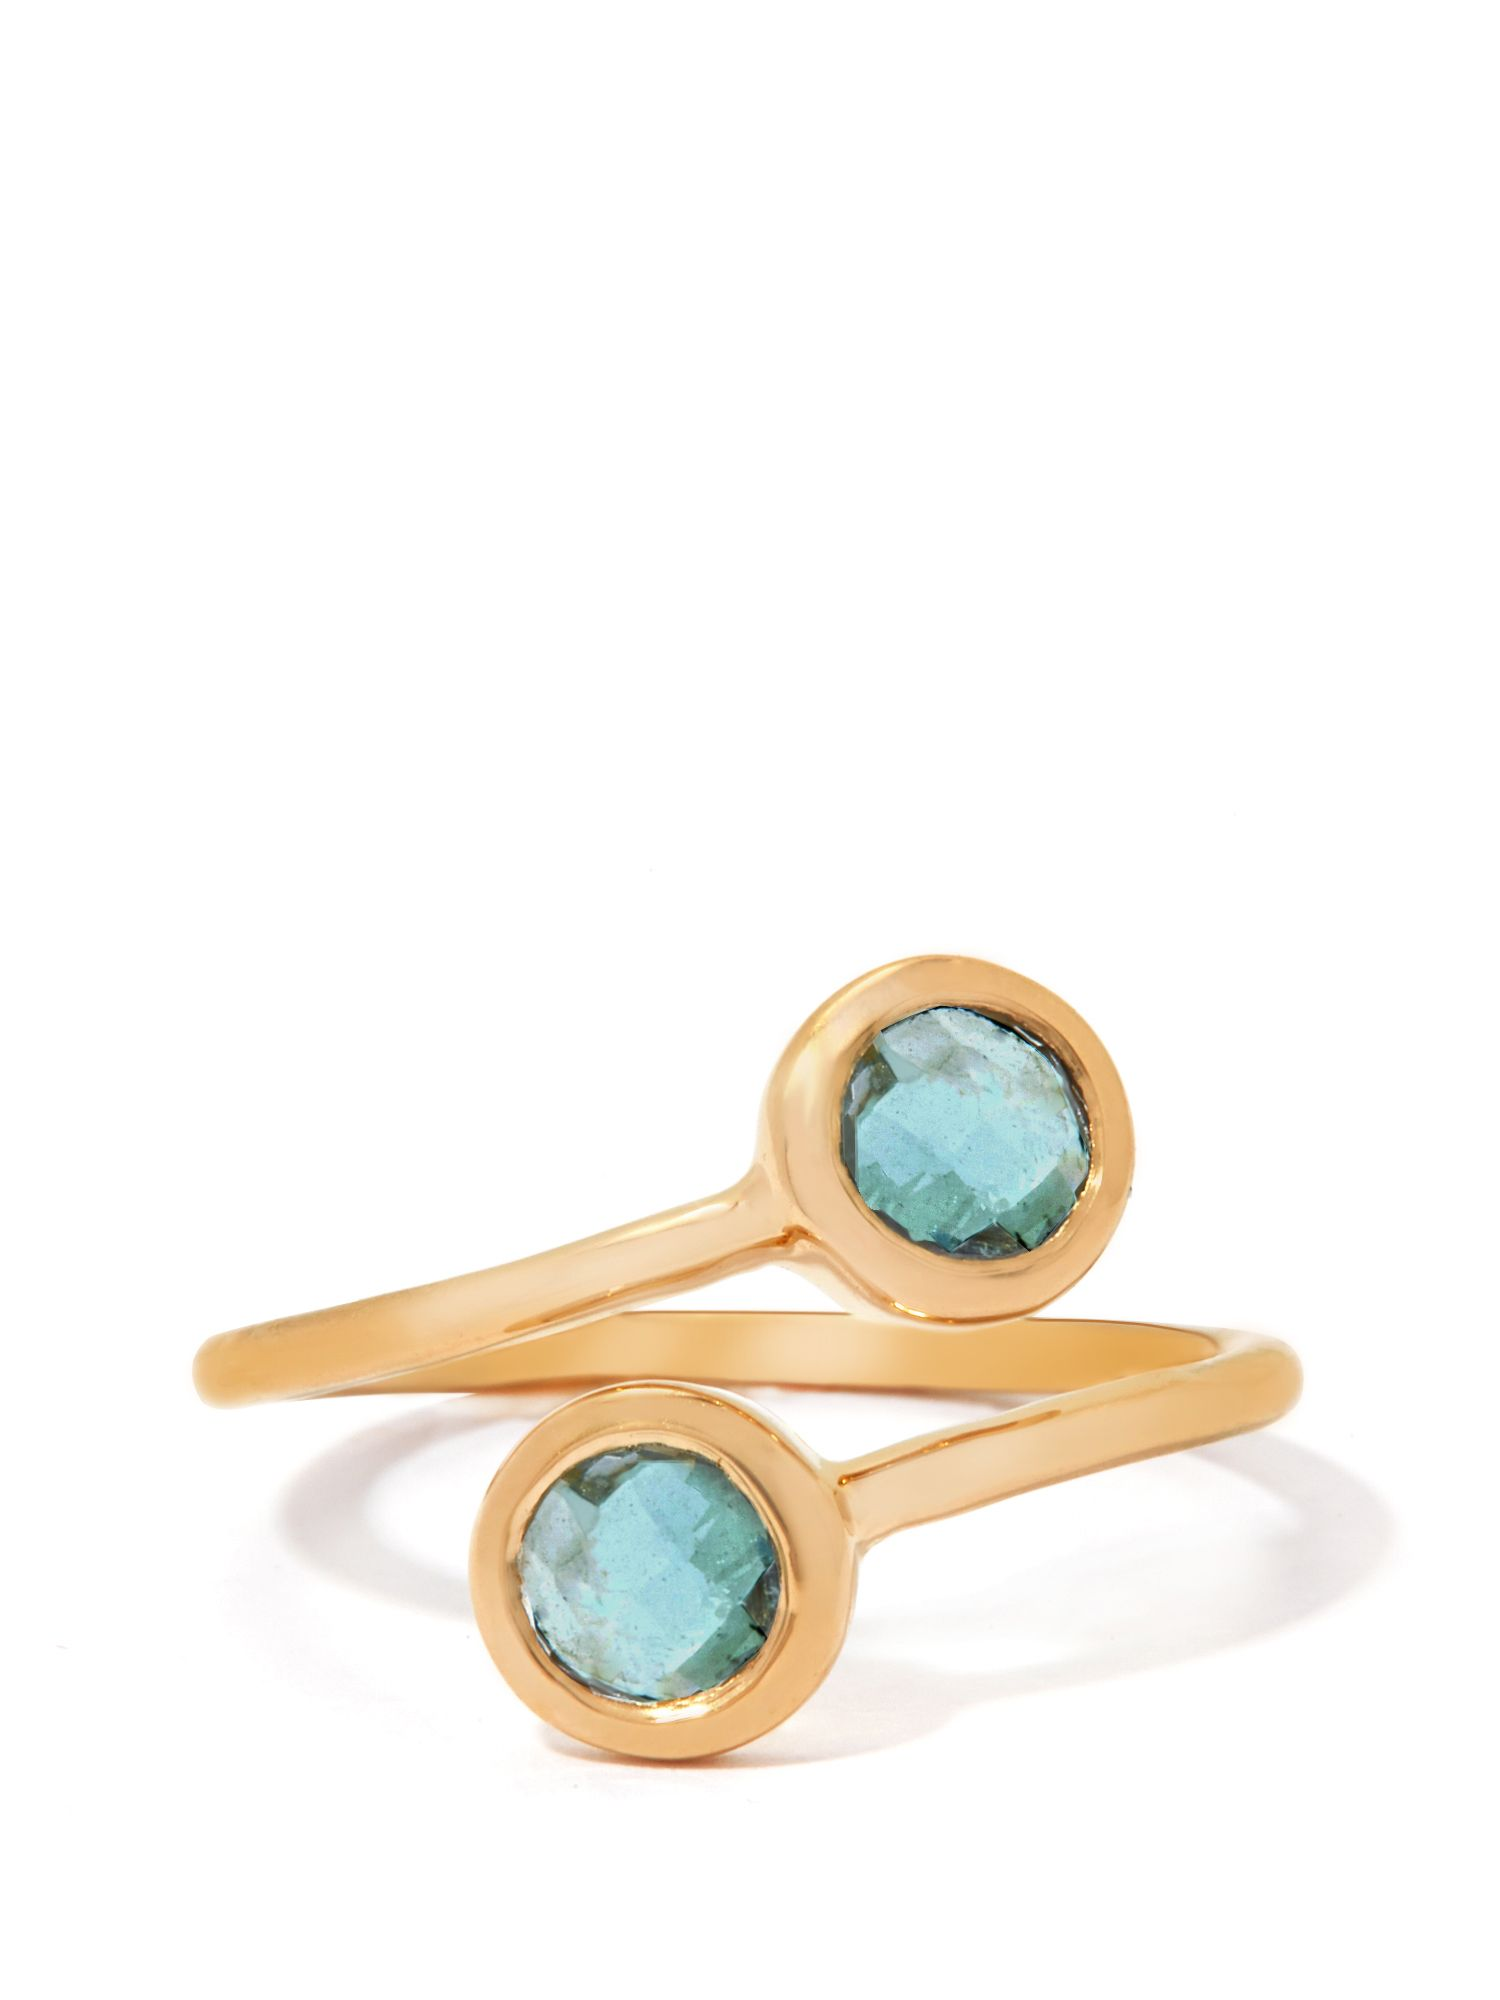 Gemporia Aquamarine gold vermeil ring, Gold